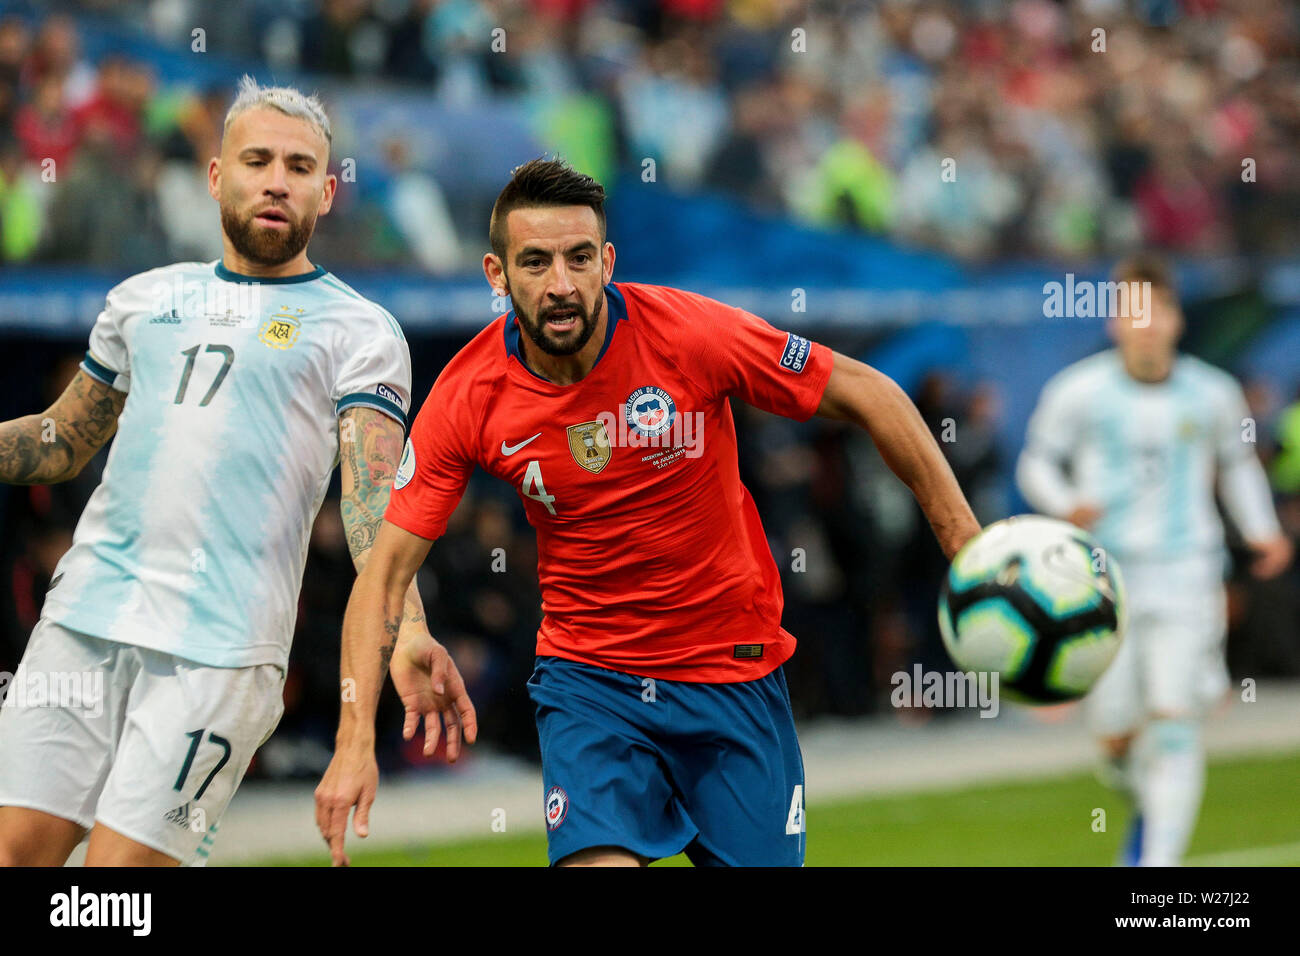 6th July 2019, Arena Corinthians Stadium, Sao Paulo, Brazil; Copa America international football, 3rd-4th playoff final, Argentina versus Chile; Nicolás Otamendi of Argentina outpaced by Mauricio Isla of Chile - Stock Image